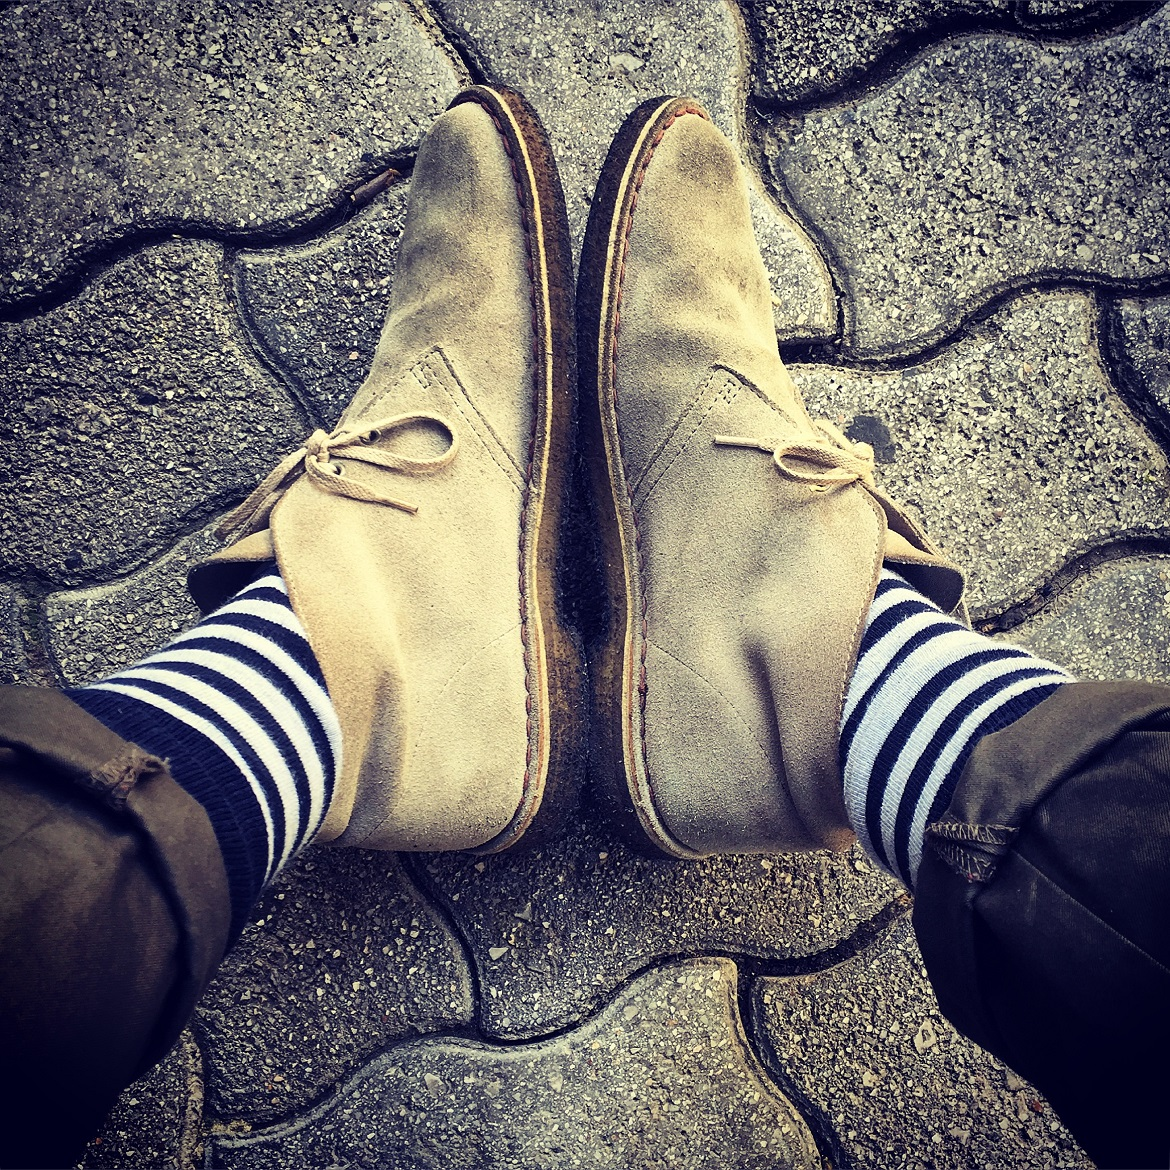 All-time-classic Clarks desert boots in grey. Buy a pair to last forever!